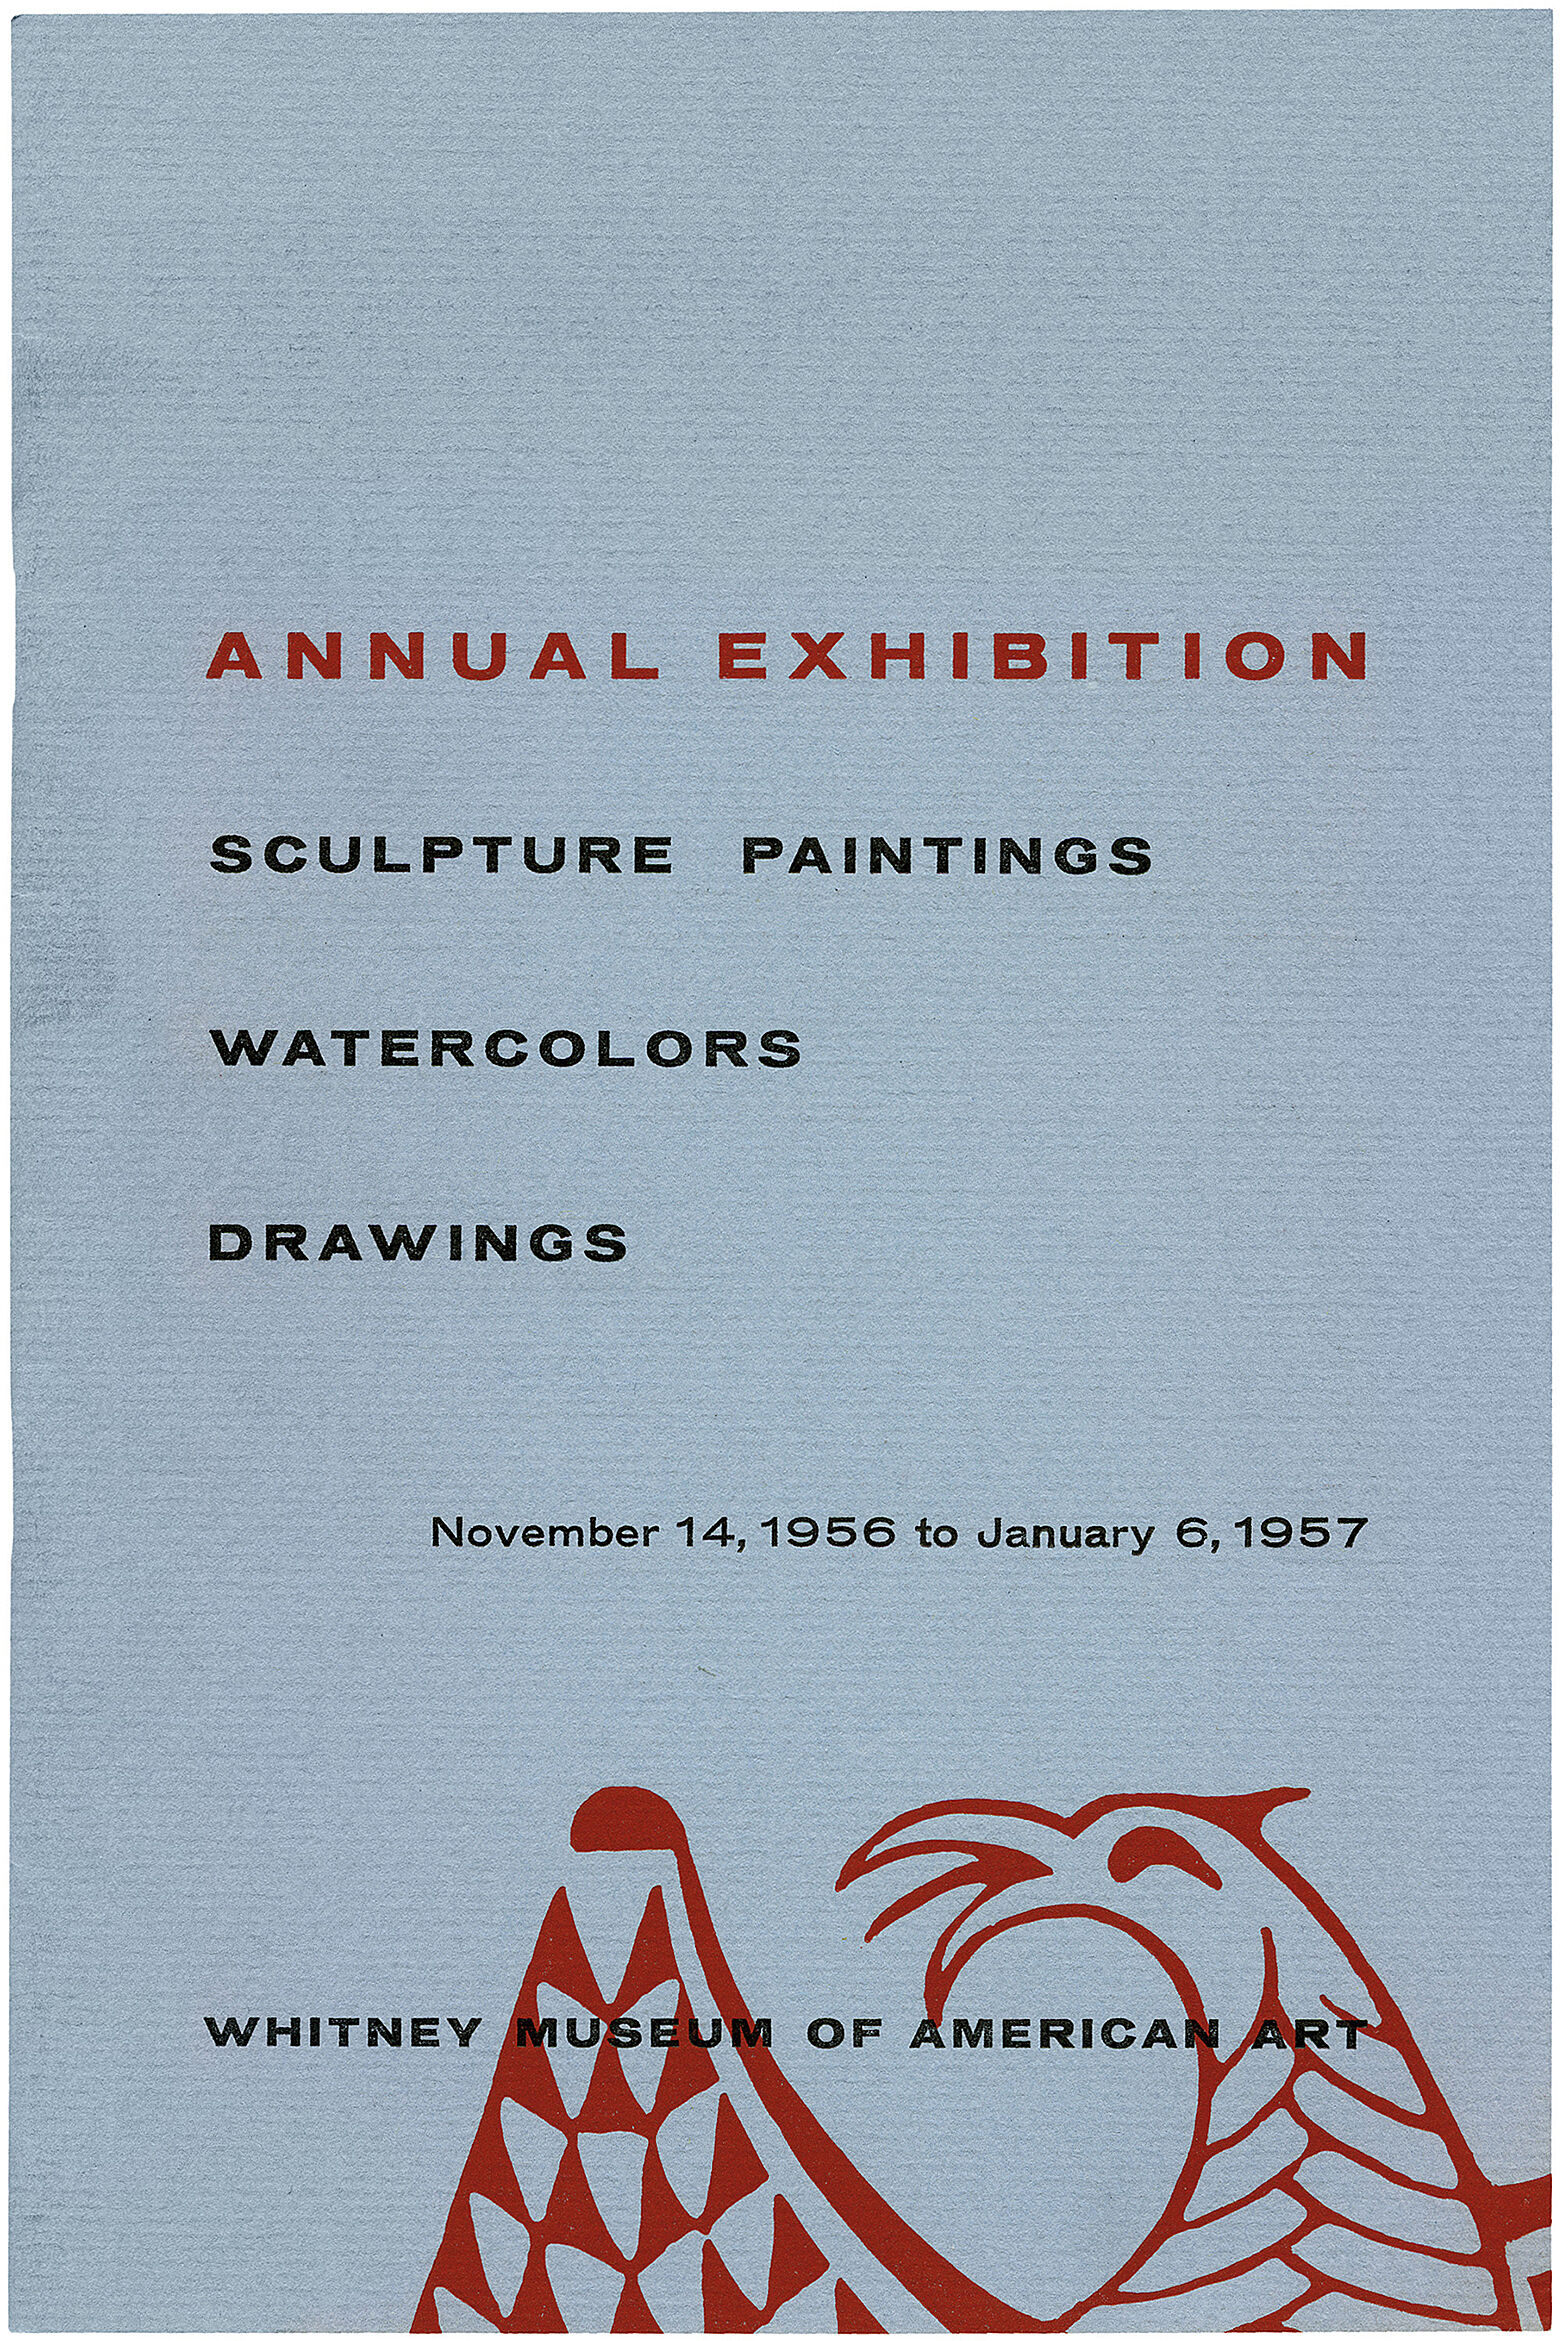 Catalogue cover for 1956 Annual Exhibition: Sculpture, Paintings, Watercolors and Drawings